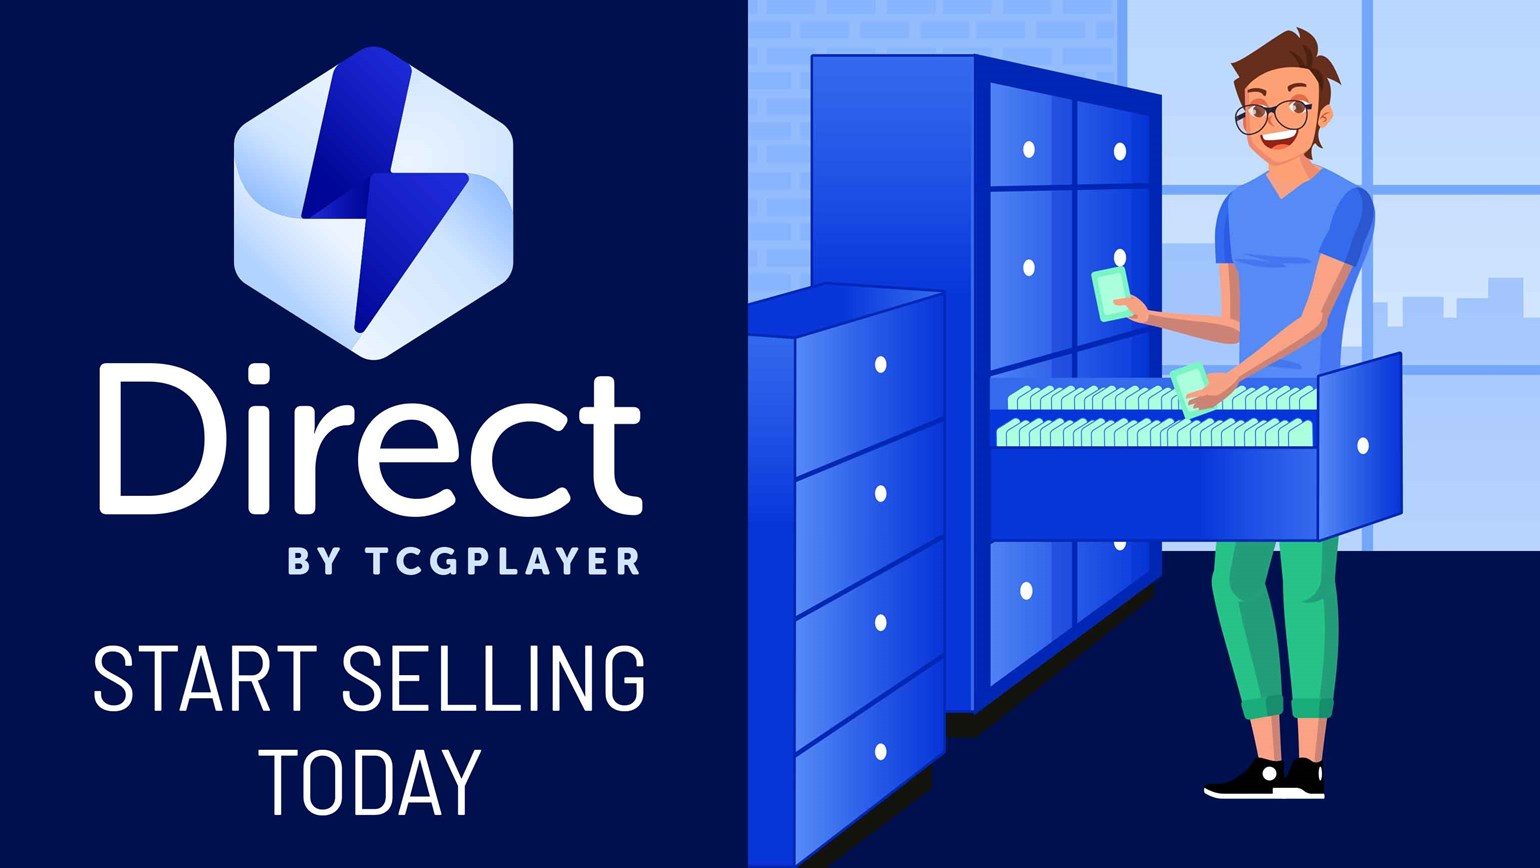 Direct by TCGplayer: Start Selling Today